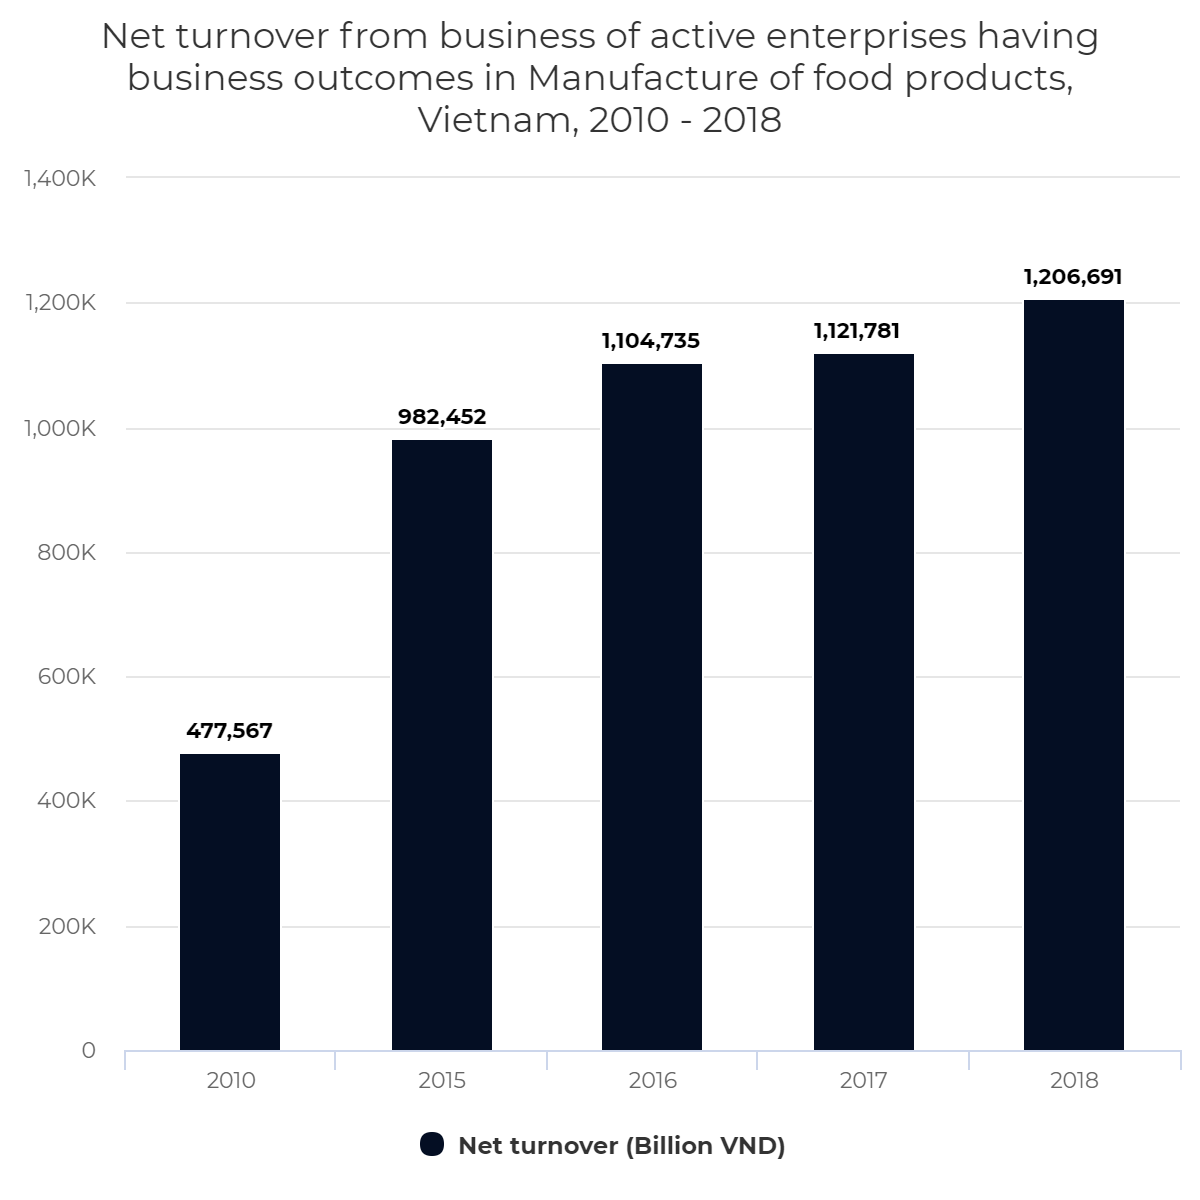 Net turnover from business of active enterprises having business outcomes in Manufacture of food products, Vietnam, 2010 – 2018